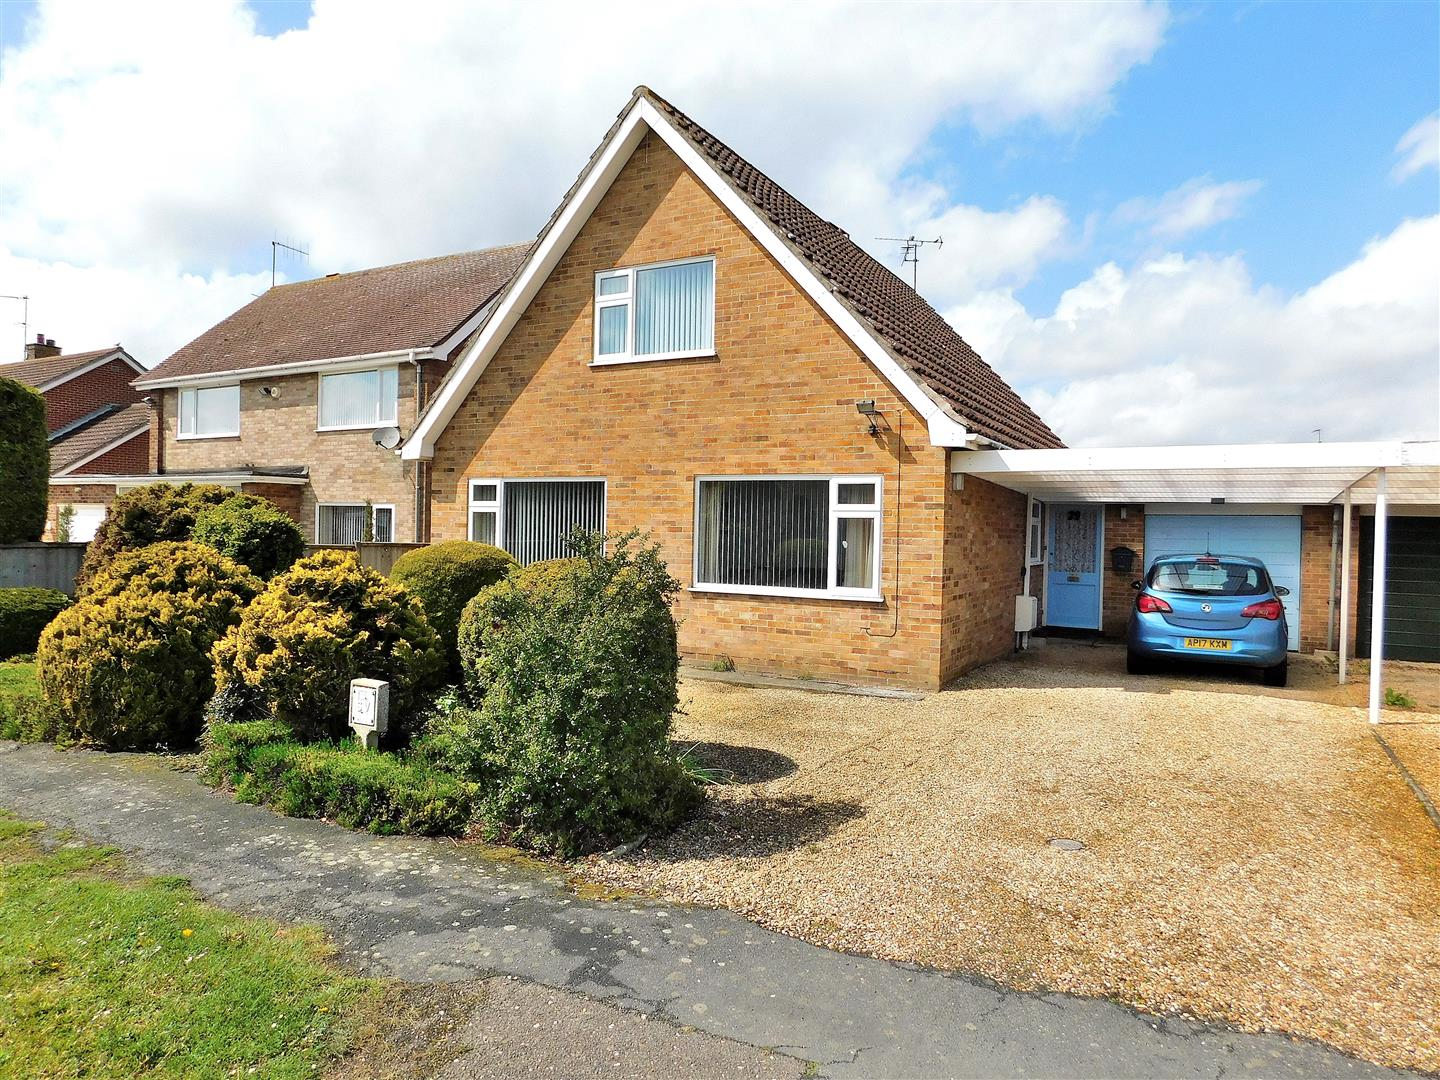 3 bed detached house for sale in Fir Tree Drive, King's Lynn, PE33